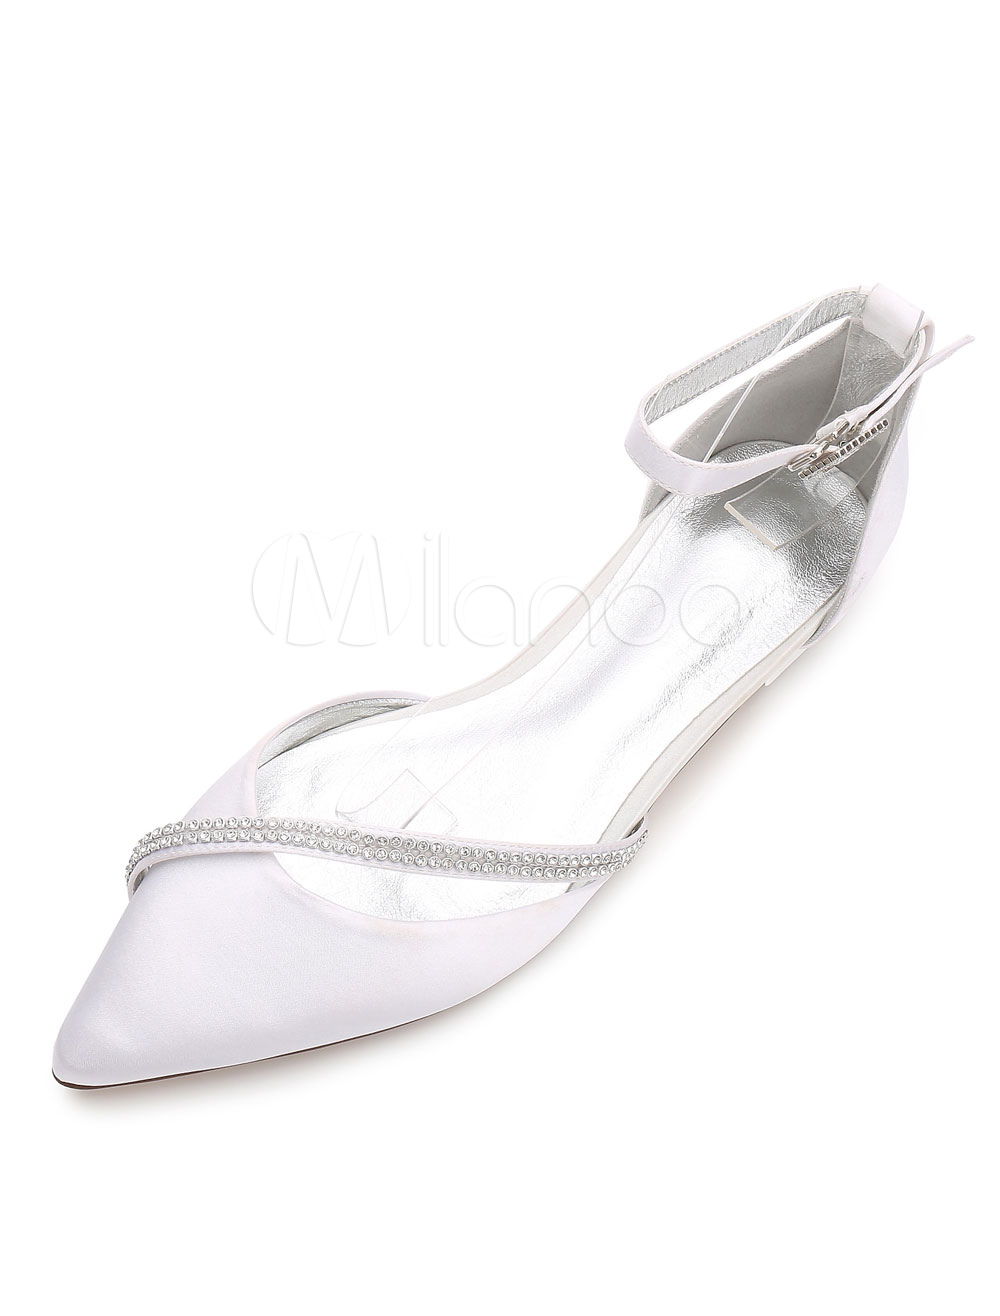 Buy White Wedding Shoes Satin Bridesmaid Shoes Pointed Toe Rhinestones Flat Bridal Shoes for $47.49 in Milanoo store